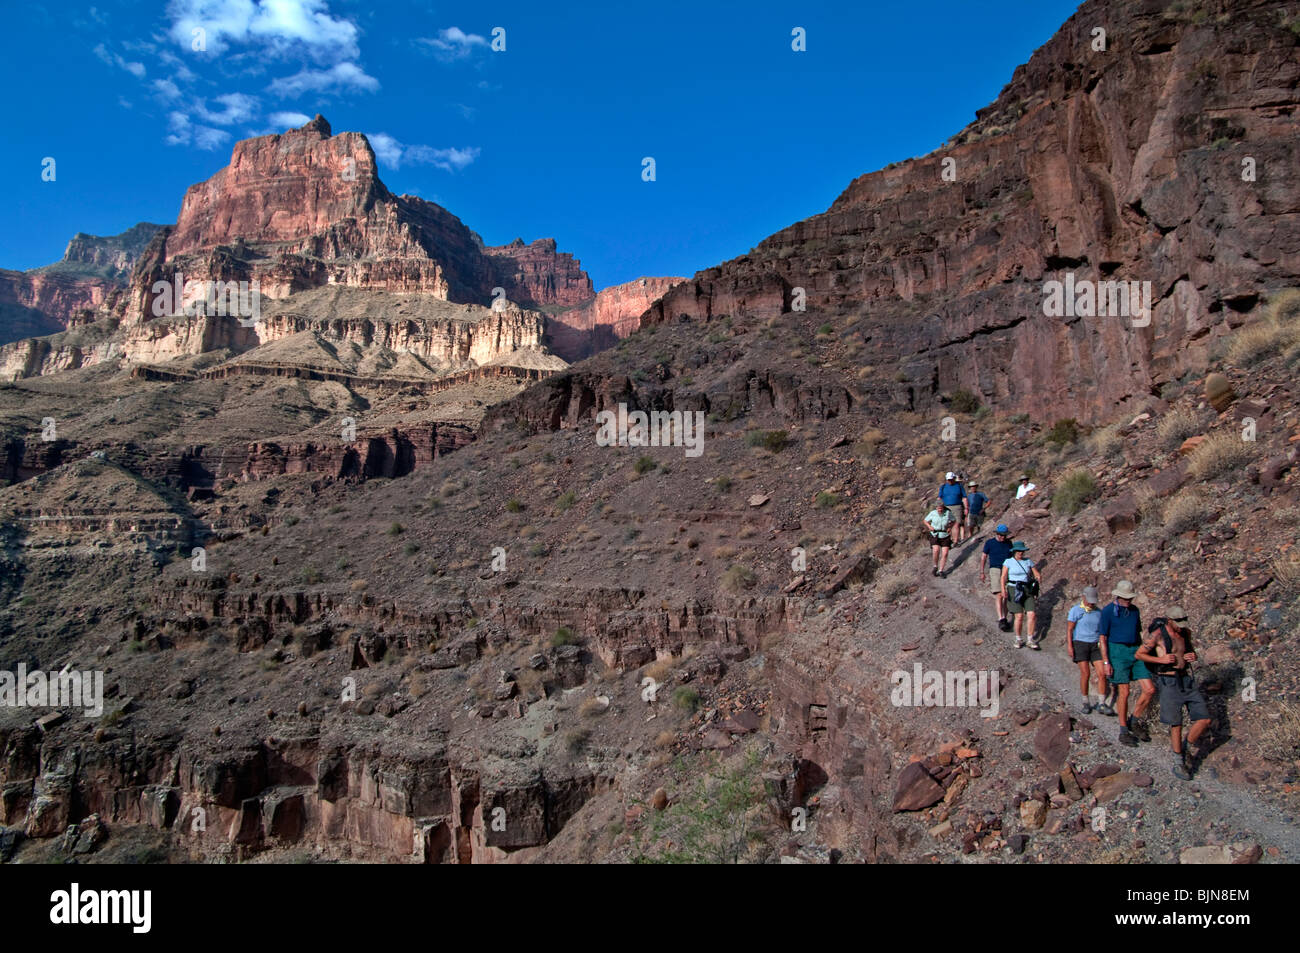 Hikers enjoy the rim view on their way to Thunder Springs - Stock Image